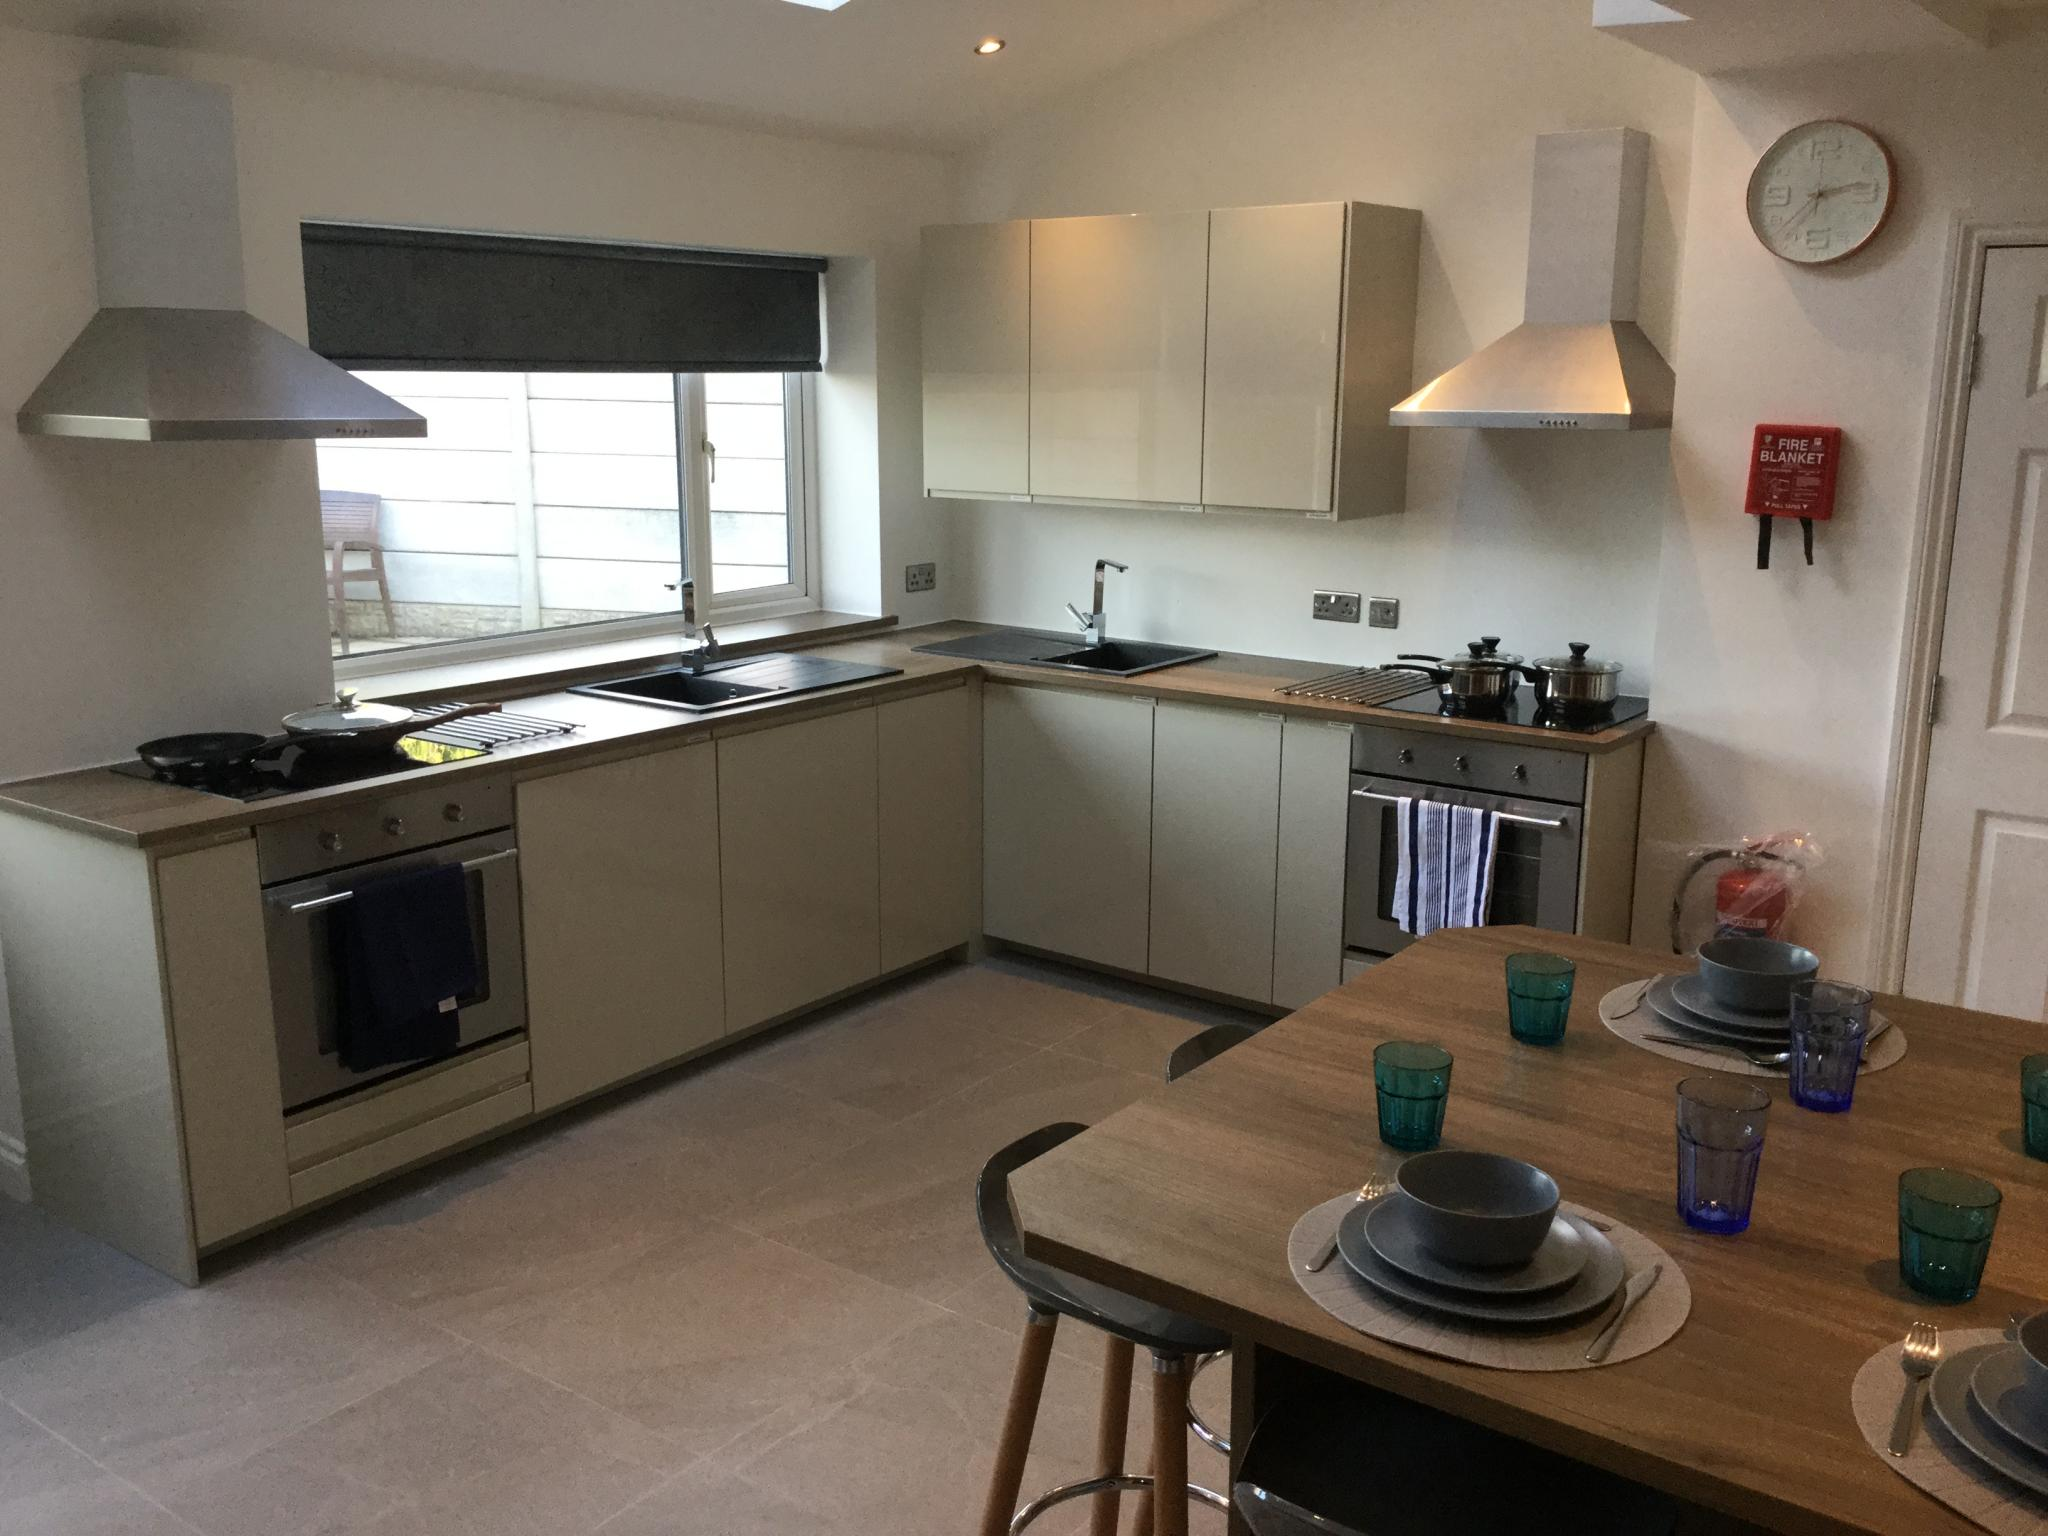 1 Bedroom Semi-detached House To Rent - Kitchen and Dining